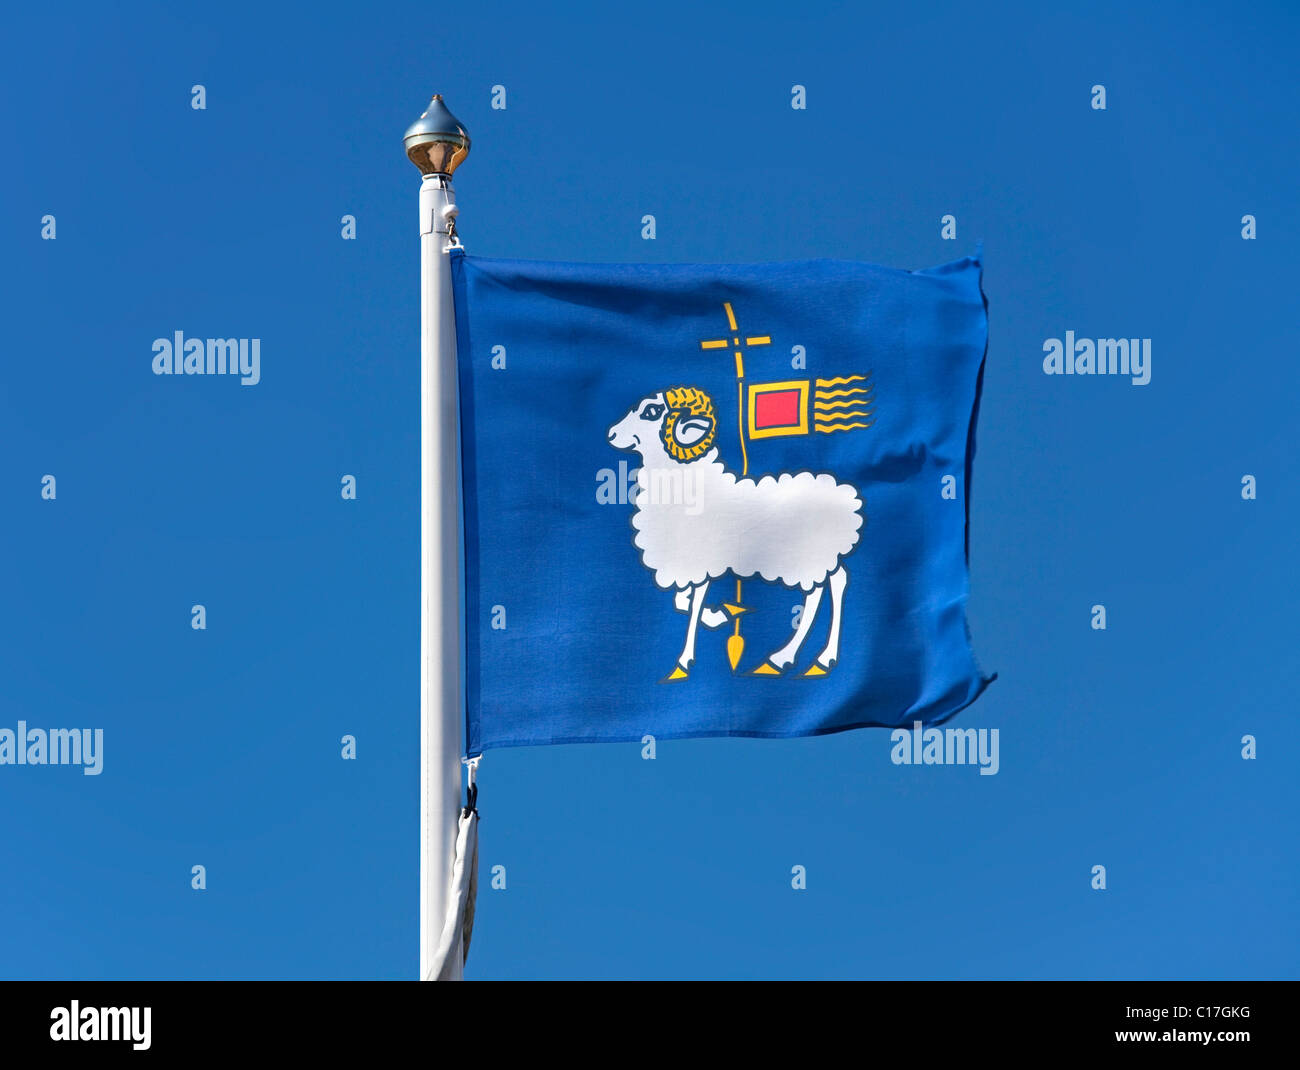 Flag showing coat of arms of Gotland island, Sweden - Stock Image